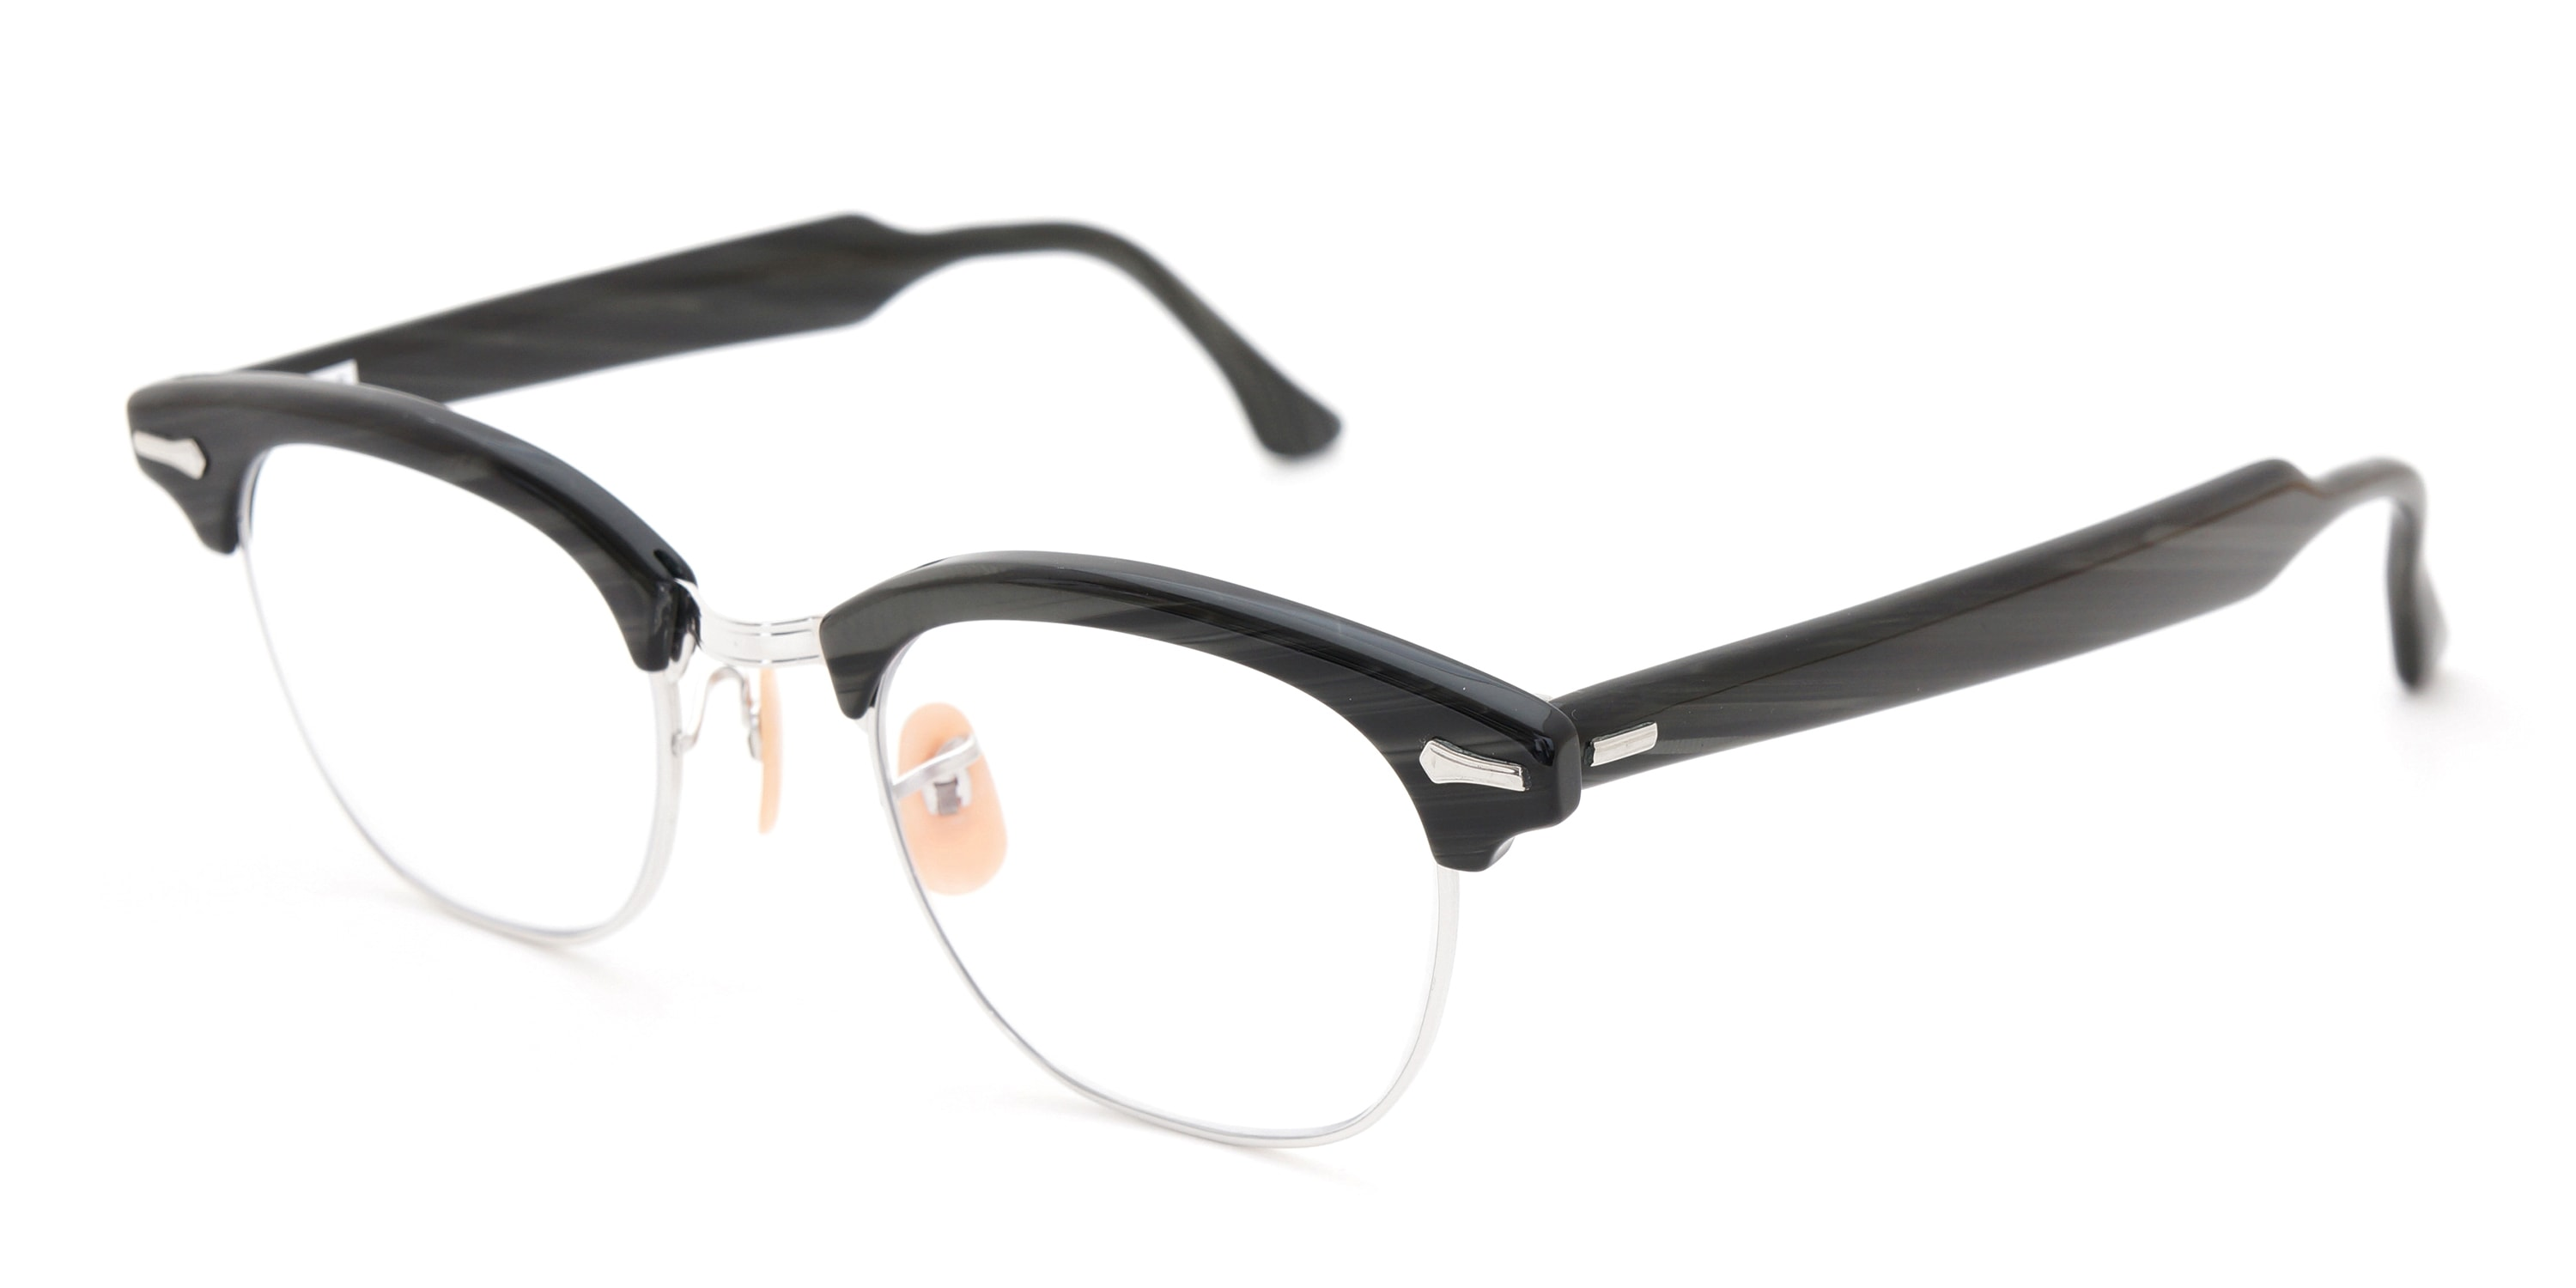 The Spectacle メガネ 1950s-1960s SHURON RONSIR Black-Stone WG 1/10 12KGF 46/20 イメージ3